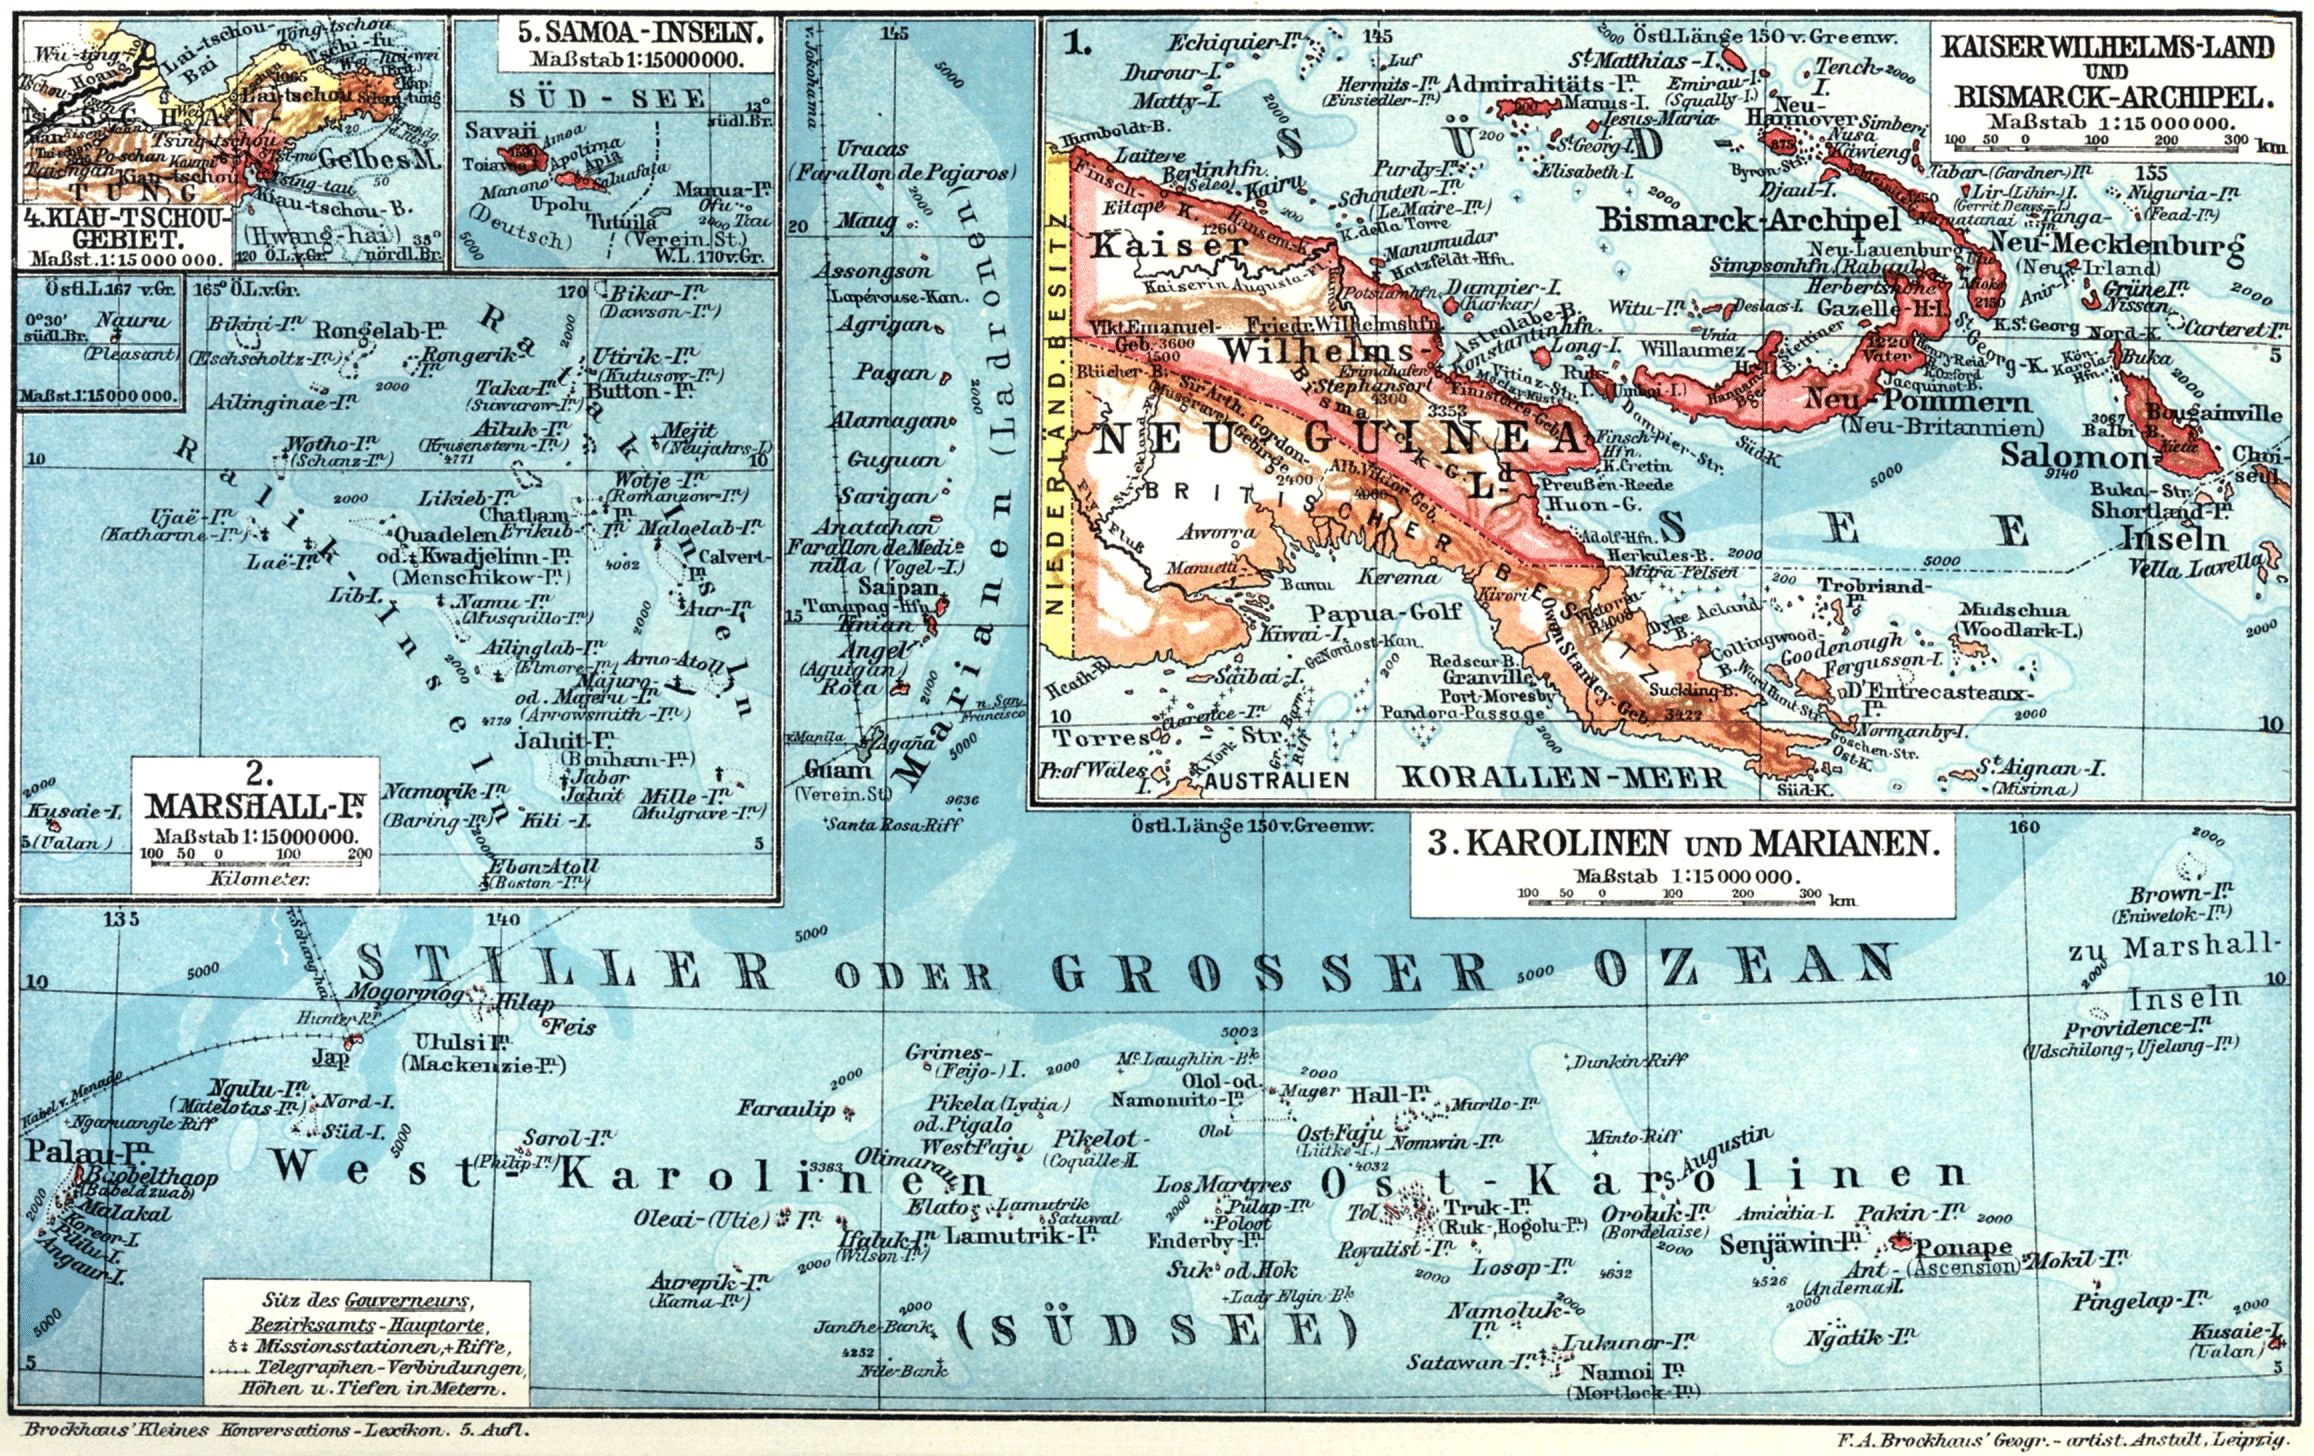 Map of the Kaiserwilhelmsland, the German colony of New Guinea, 1884–1919